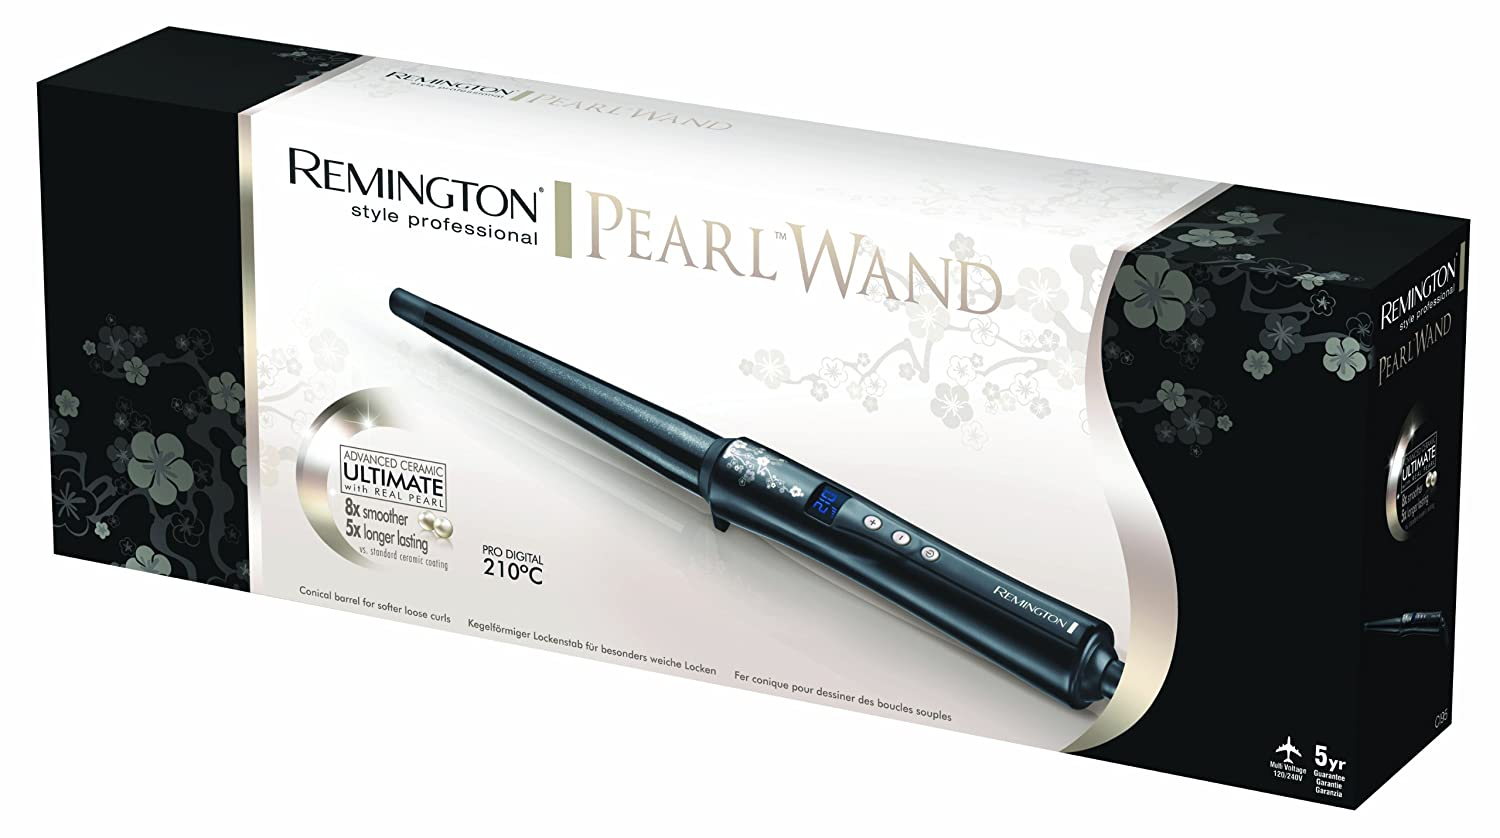 Remington CI95 Pearl Wand